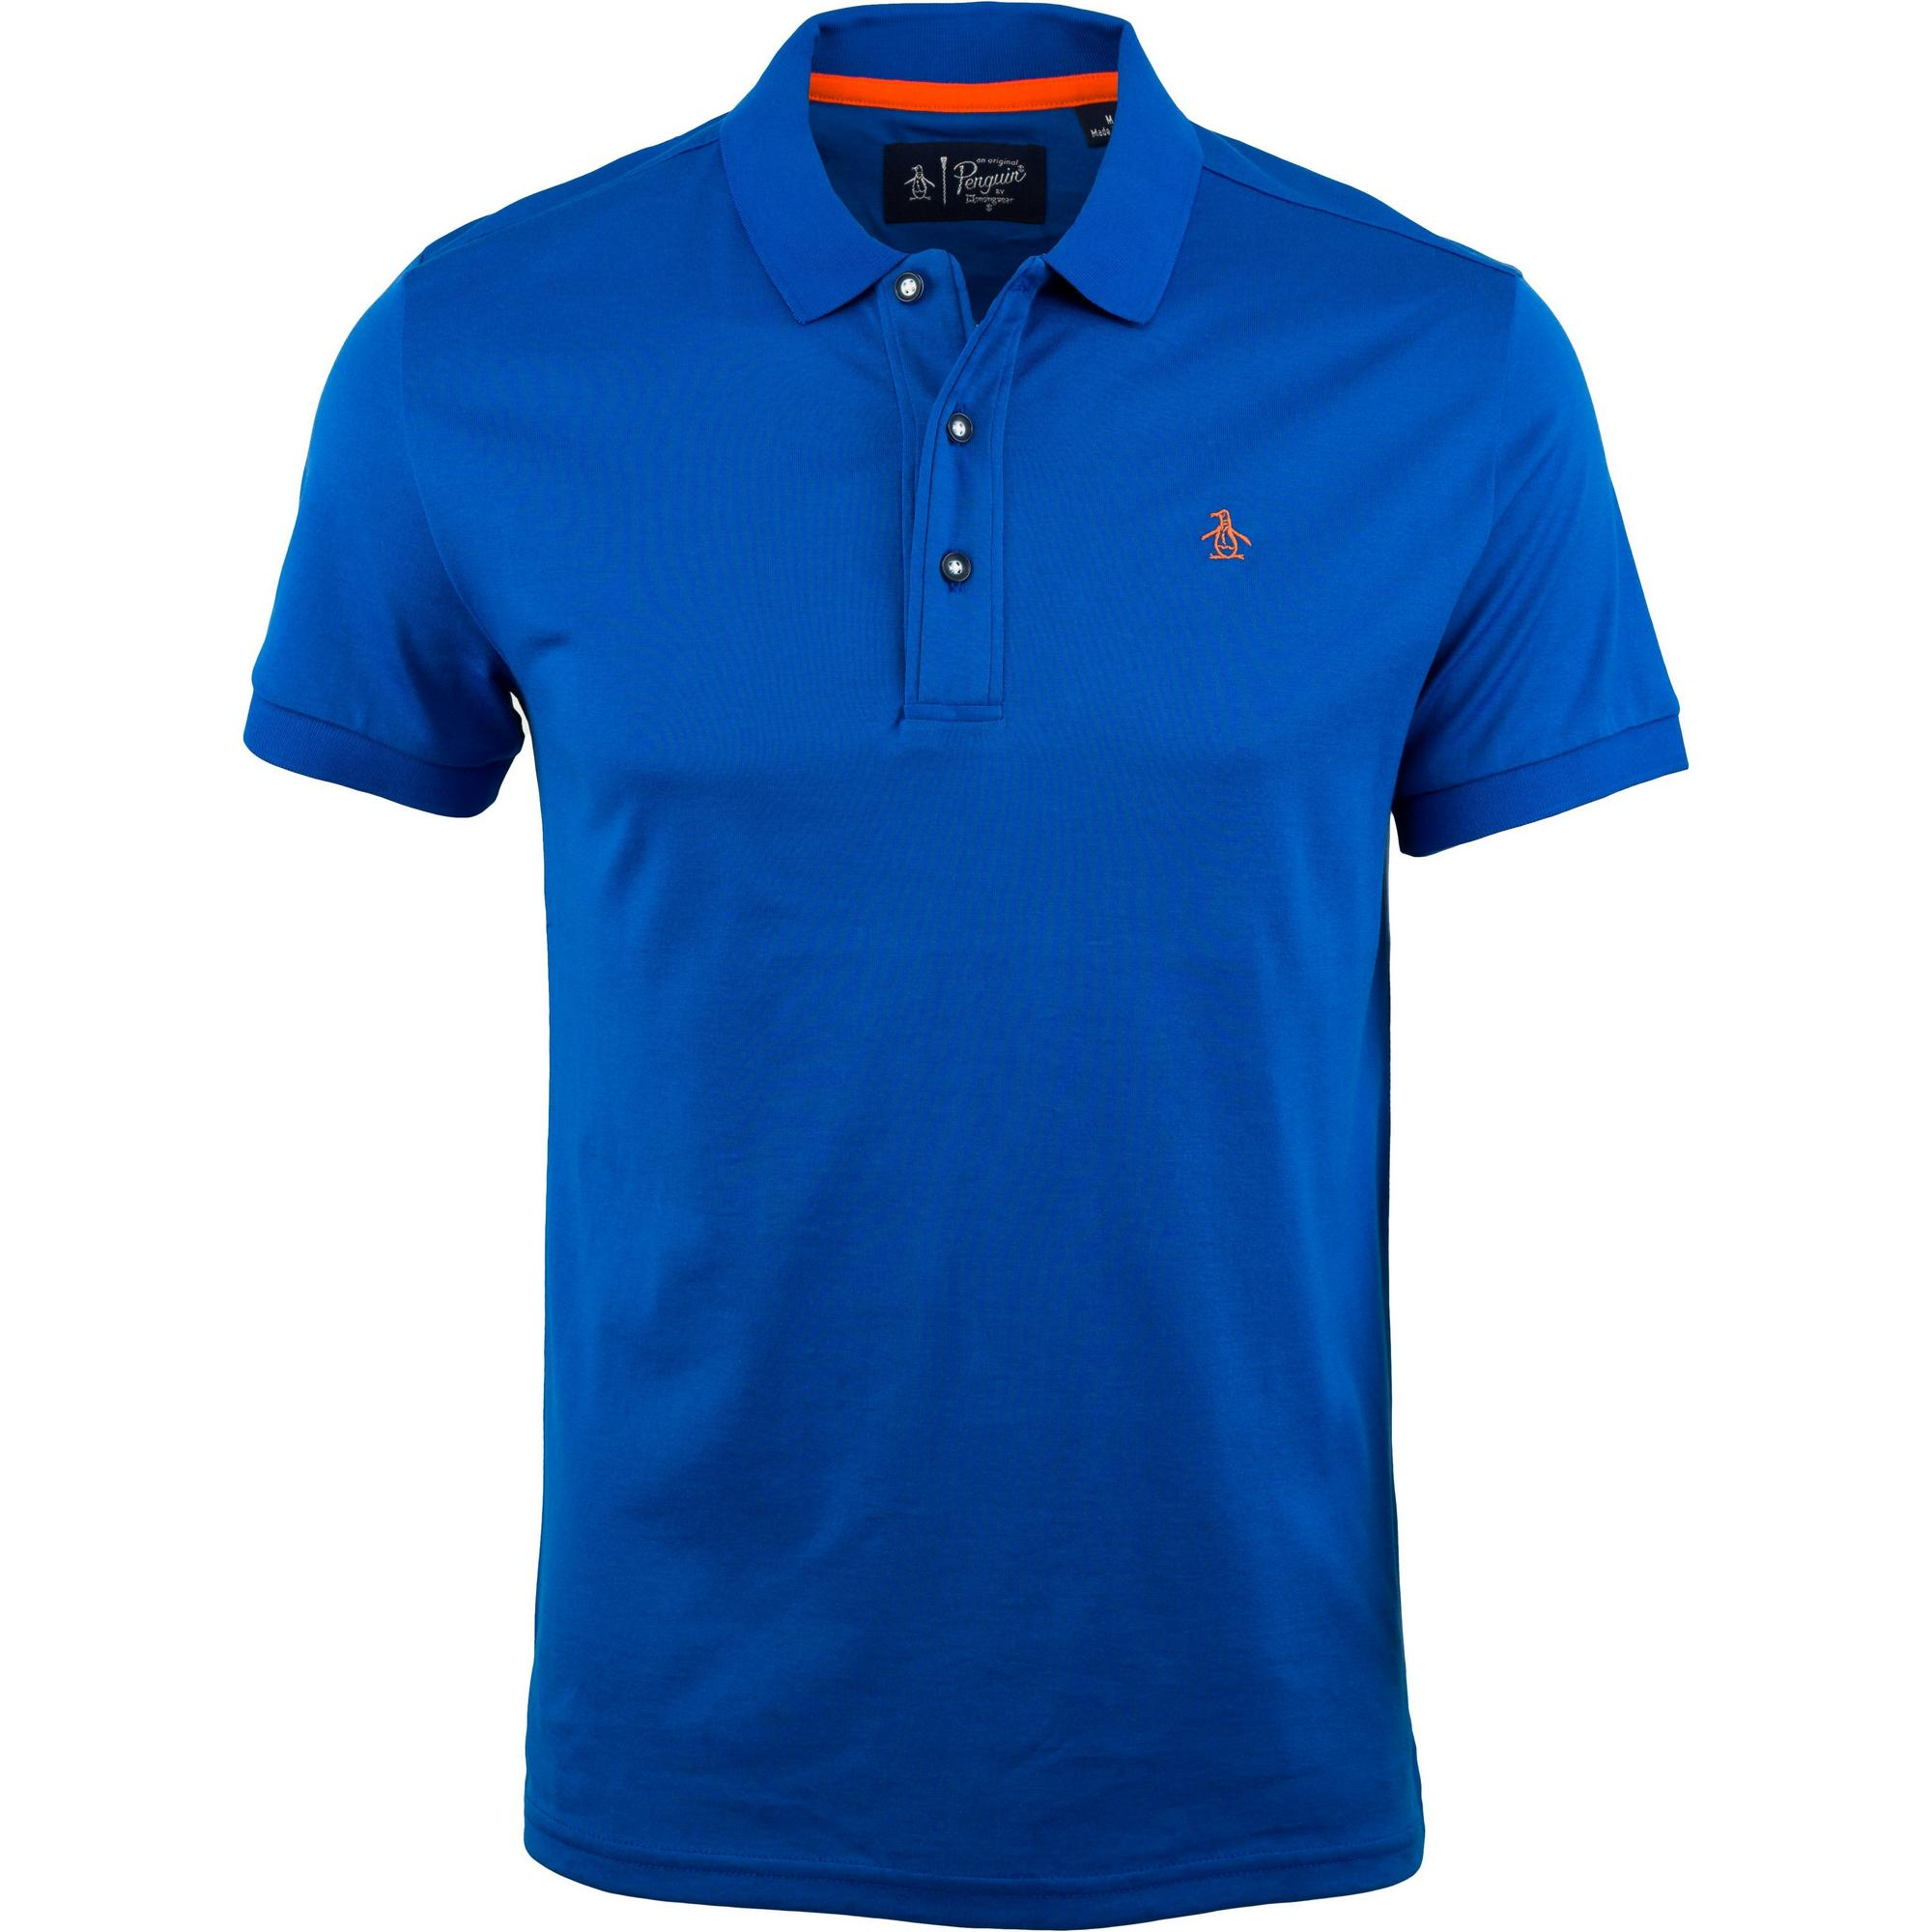 Men's The Earl Championship Short Sleeve Polo